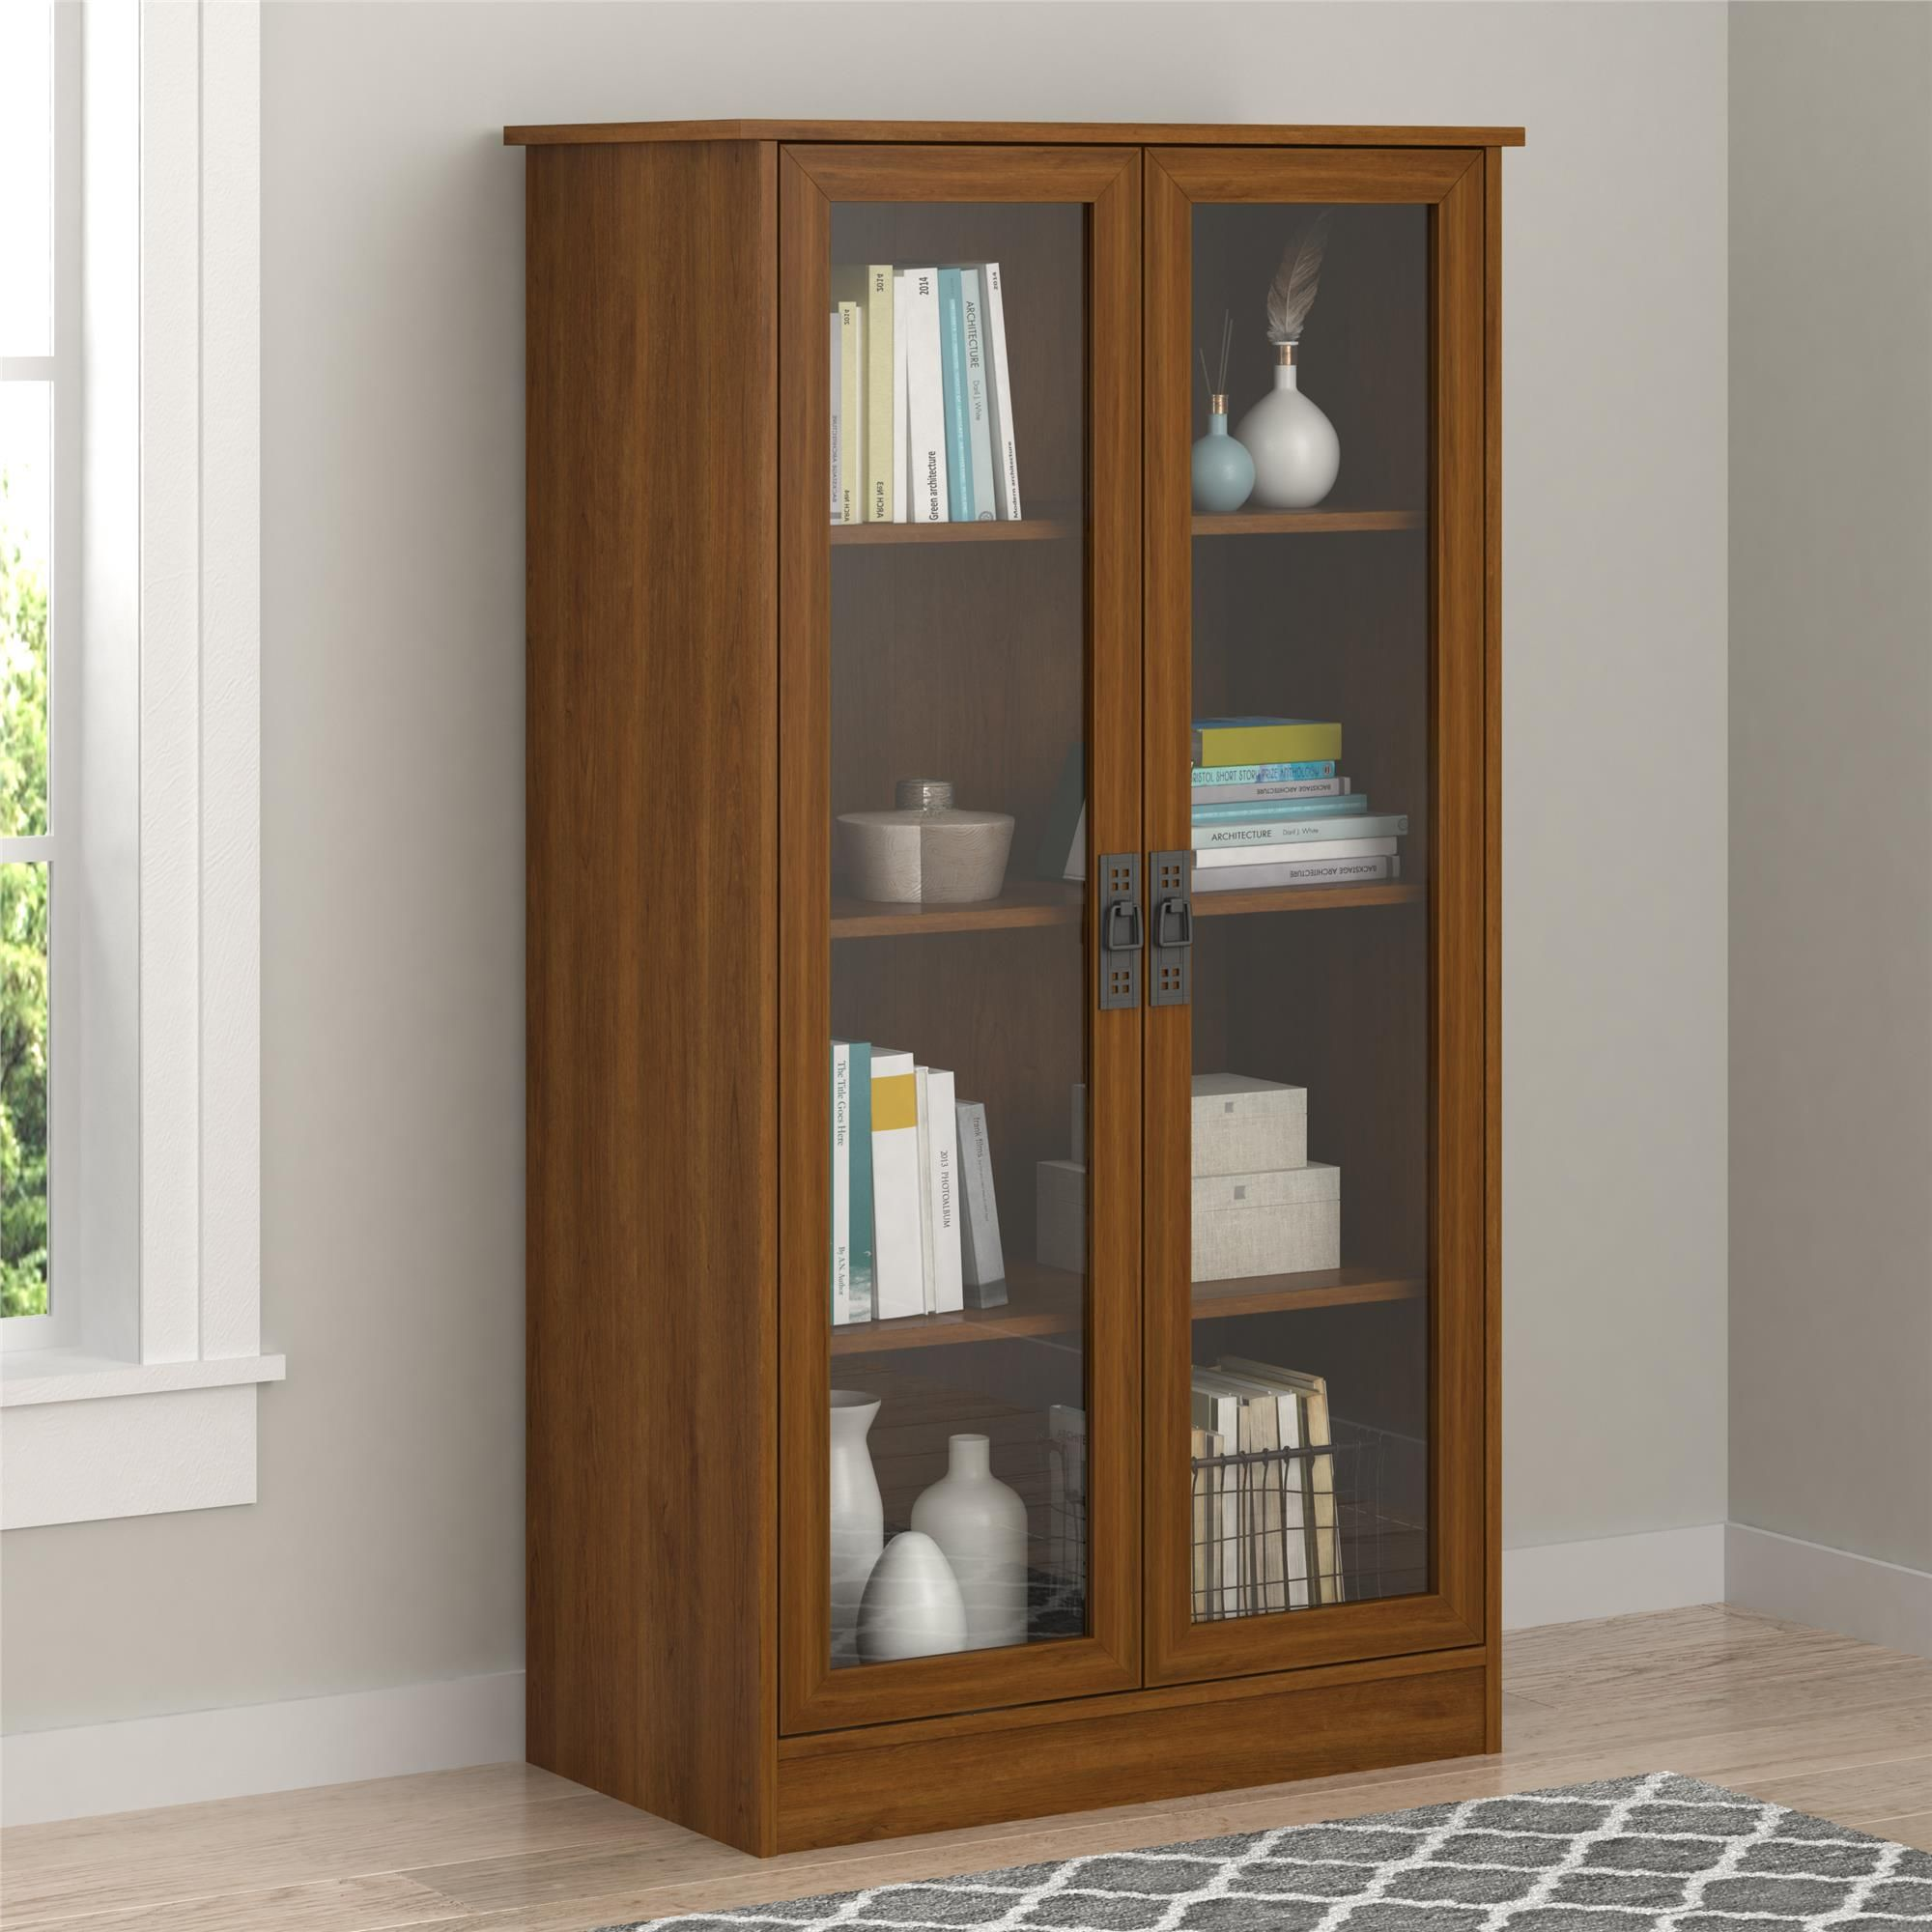 Heirloom Storage Cabinet With 4 Shelves Cherry Walmart Com Bookcase With Glass Doors Storage Cabinet Shelves Shelves